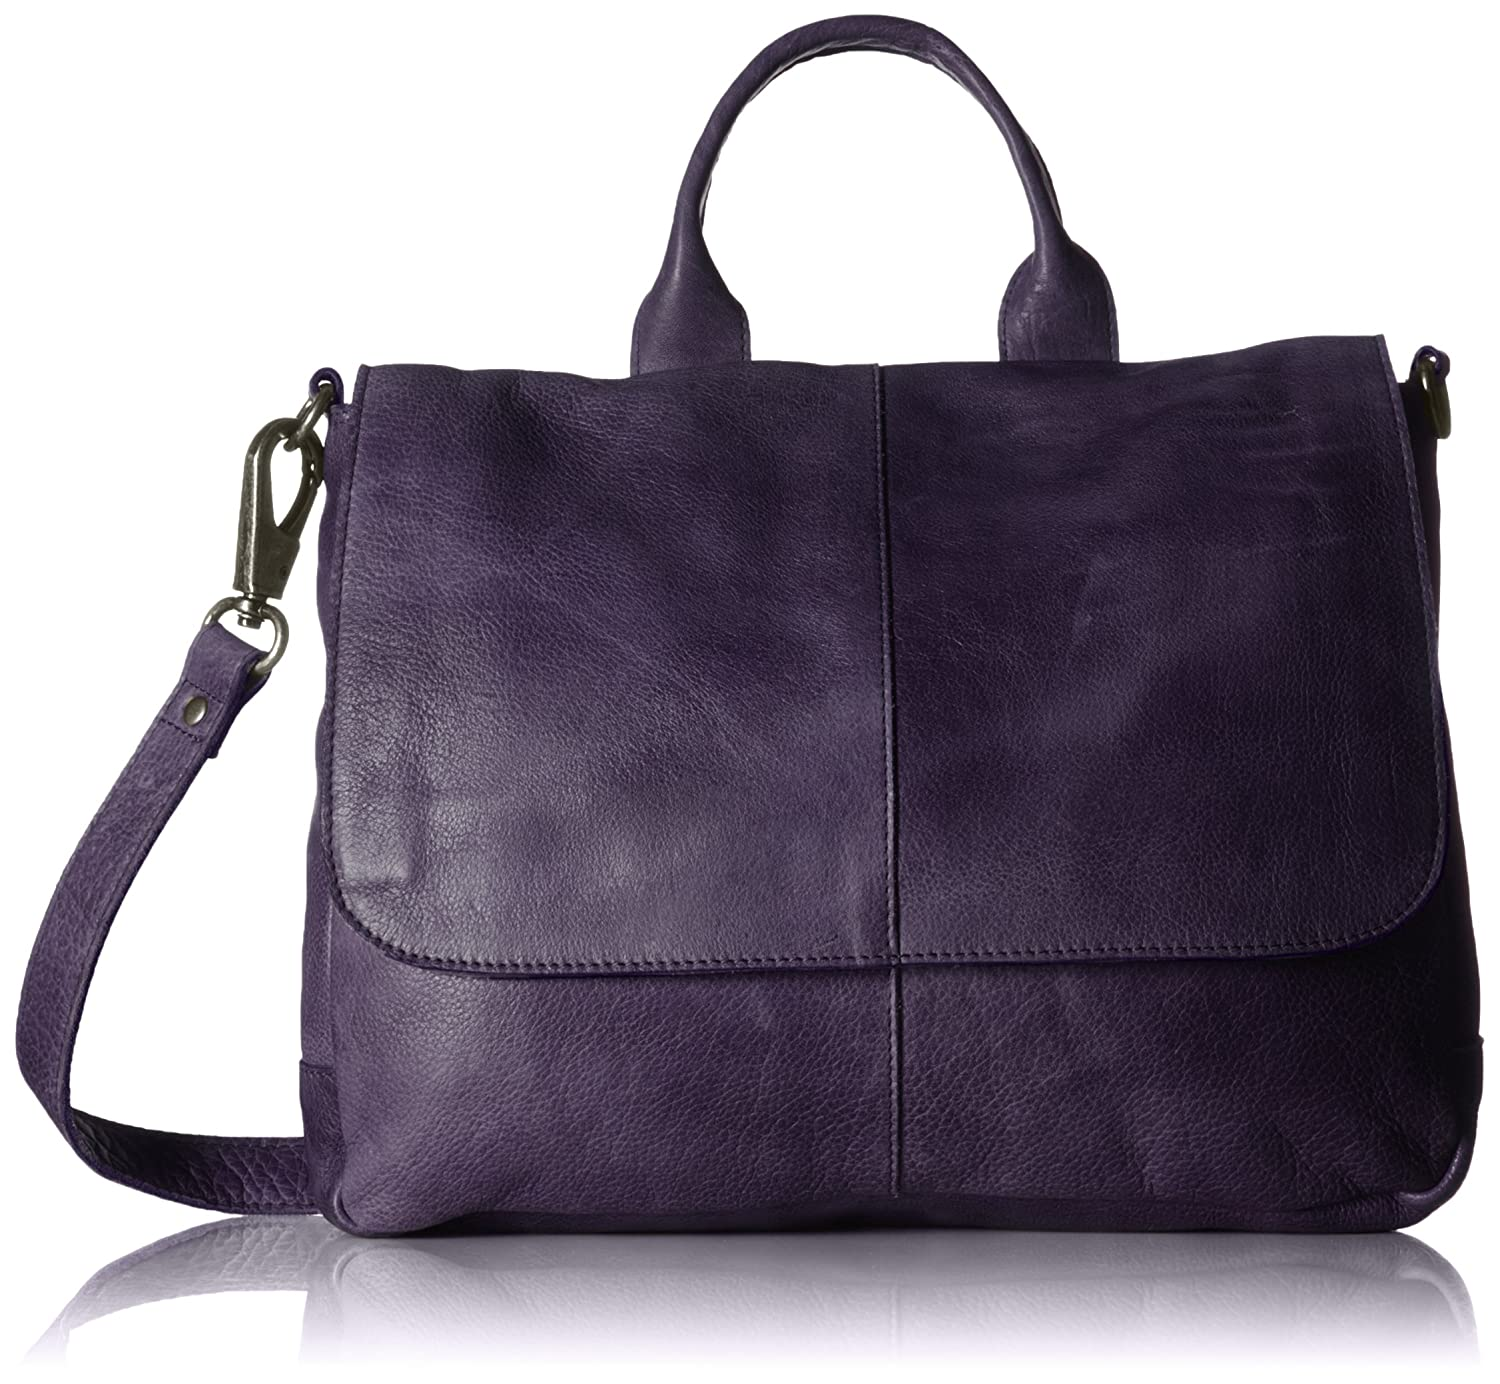 83ddc6eb6a78 Latico Renwick Shoulder Bag , 100% Authentic Leather , Designer Made,  Artisan Linings, Luxury Fashion